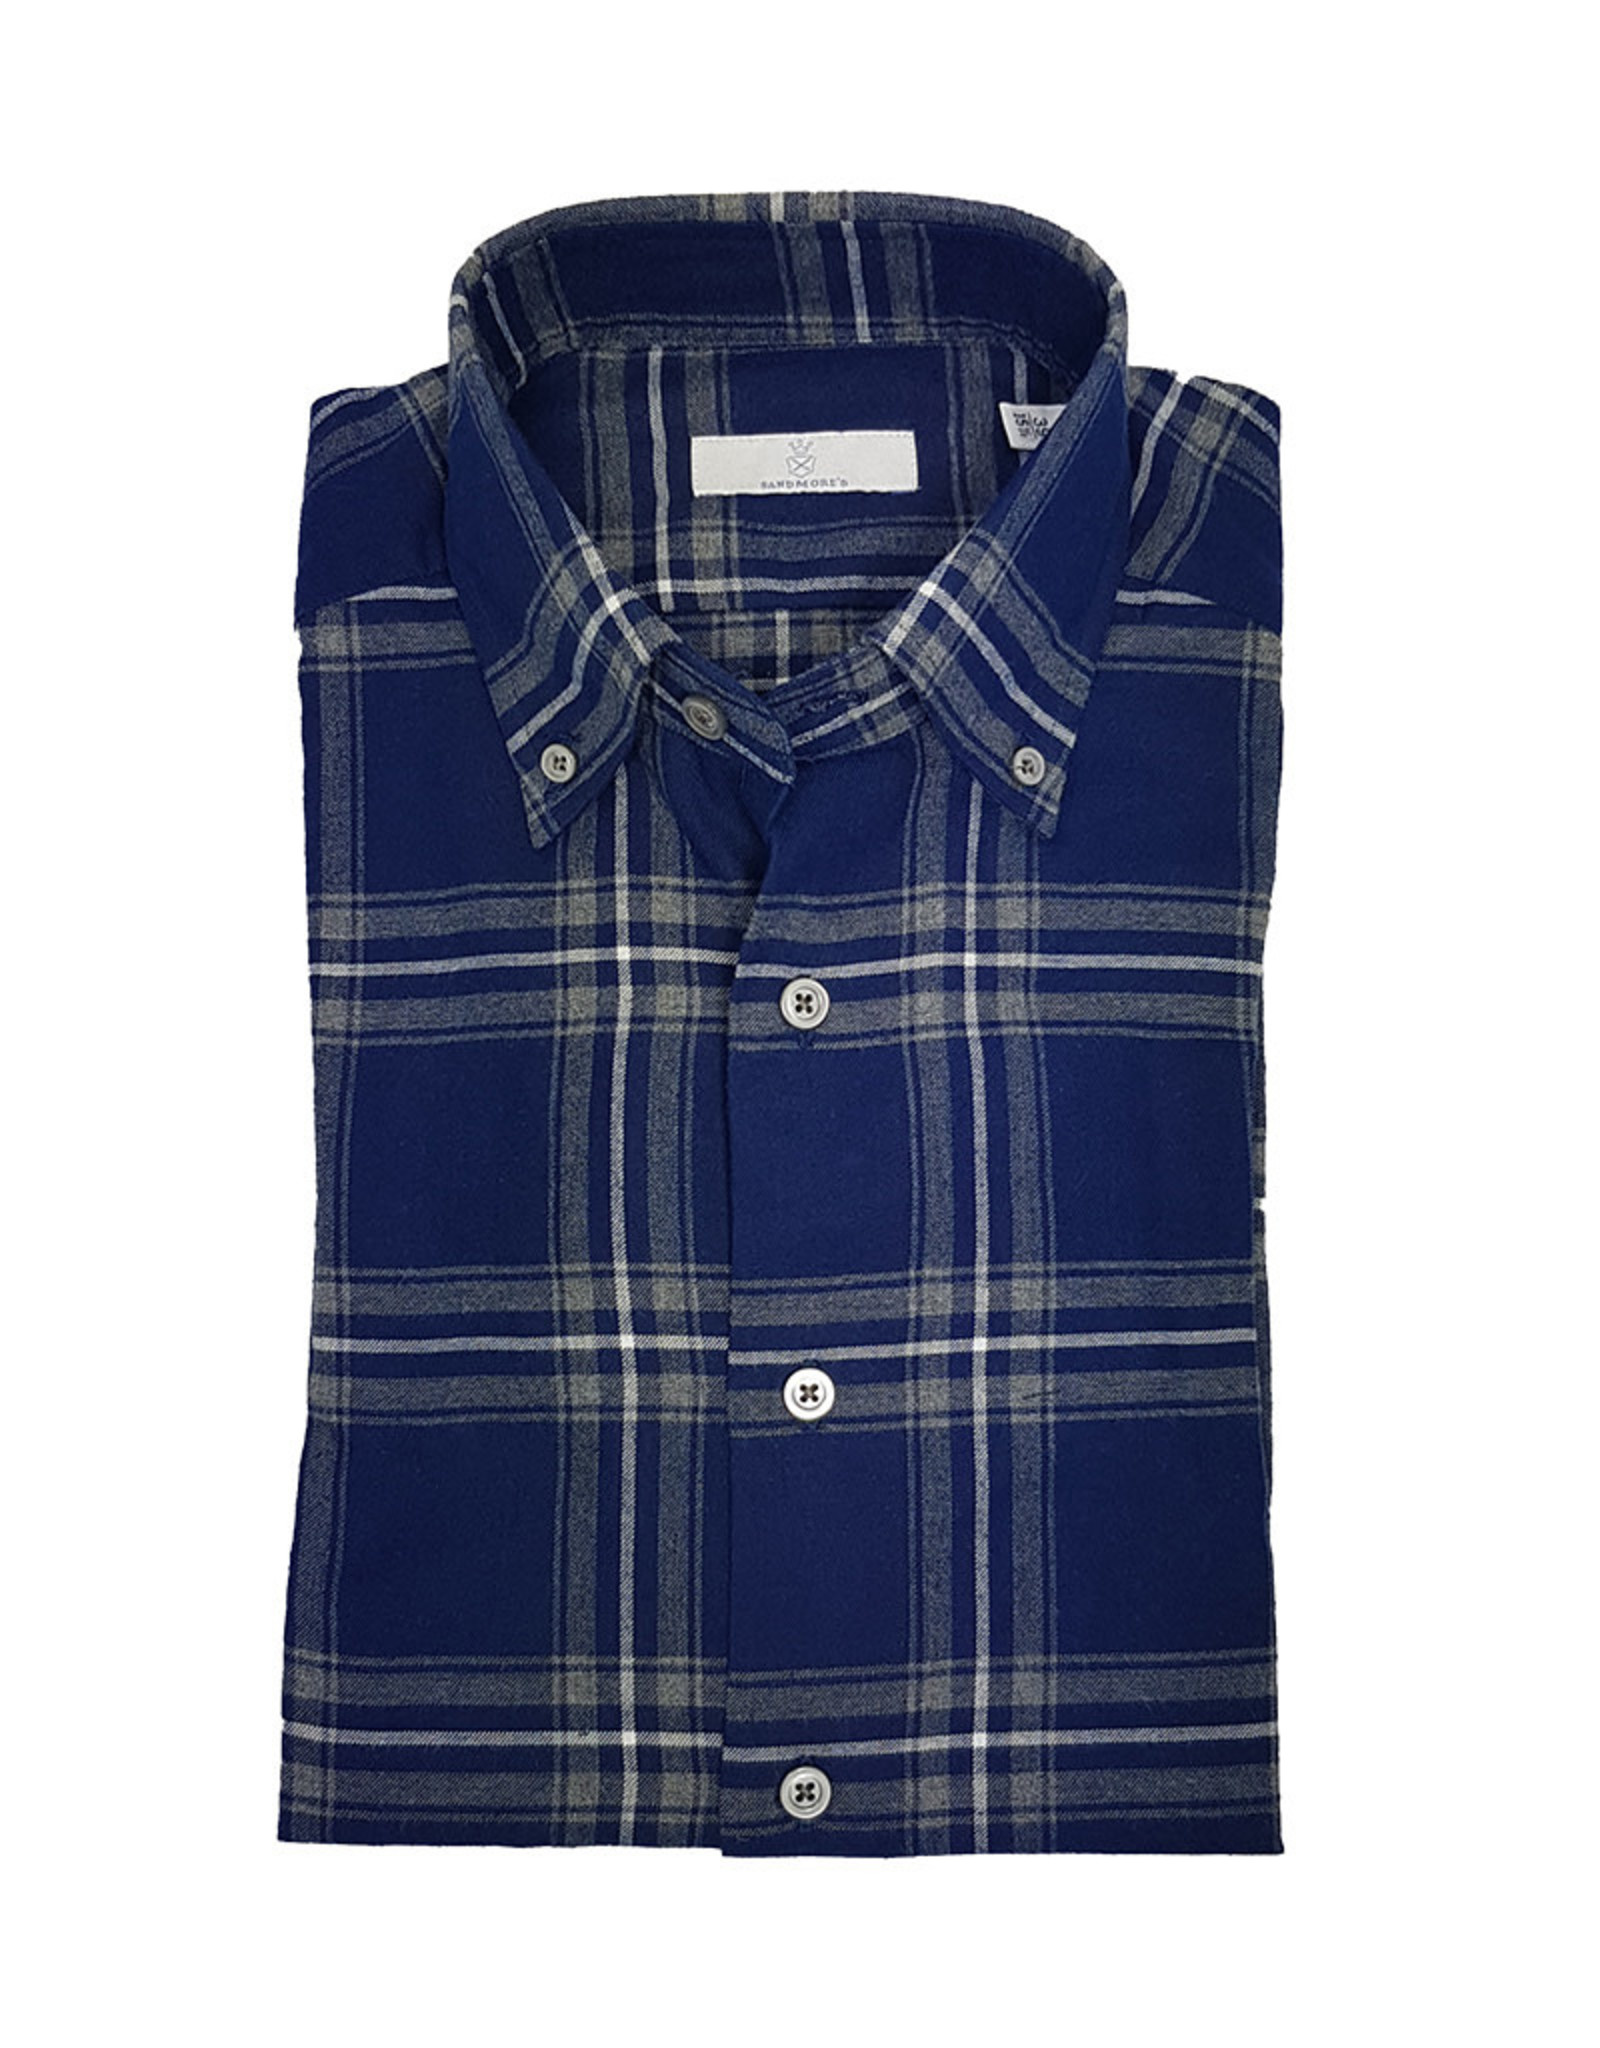 Ghirardelli Sandmore's hemd blauw flannel Fitted body A9122